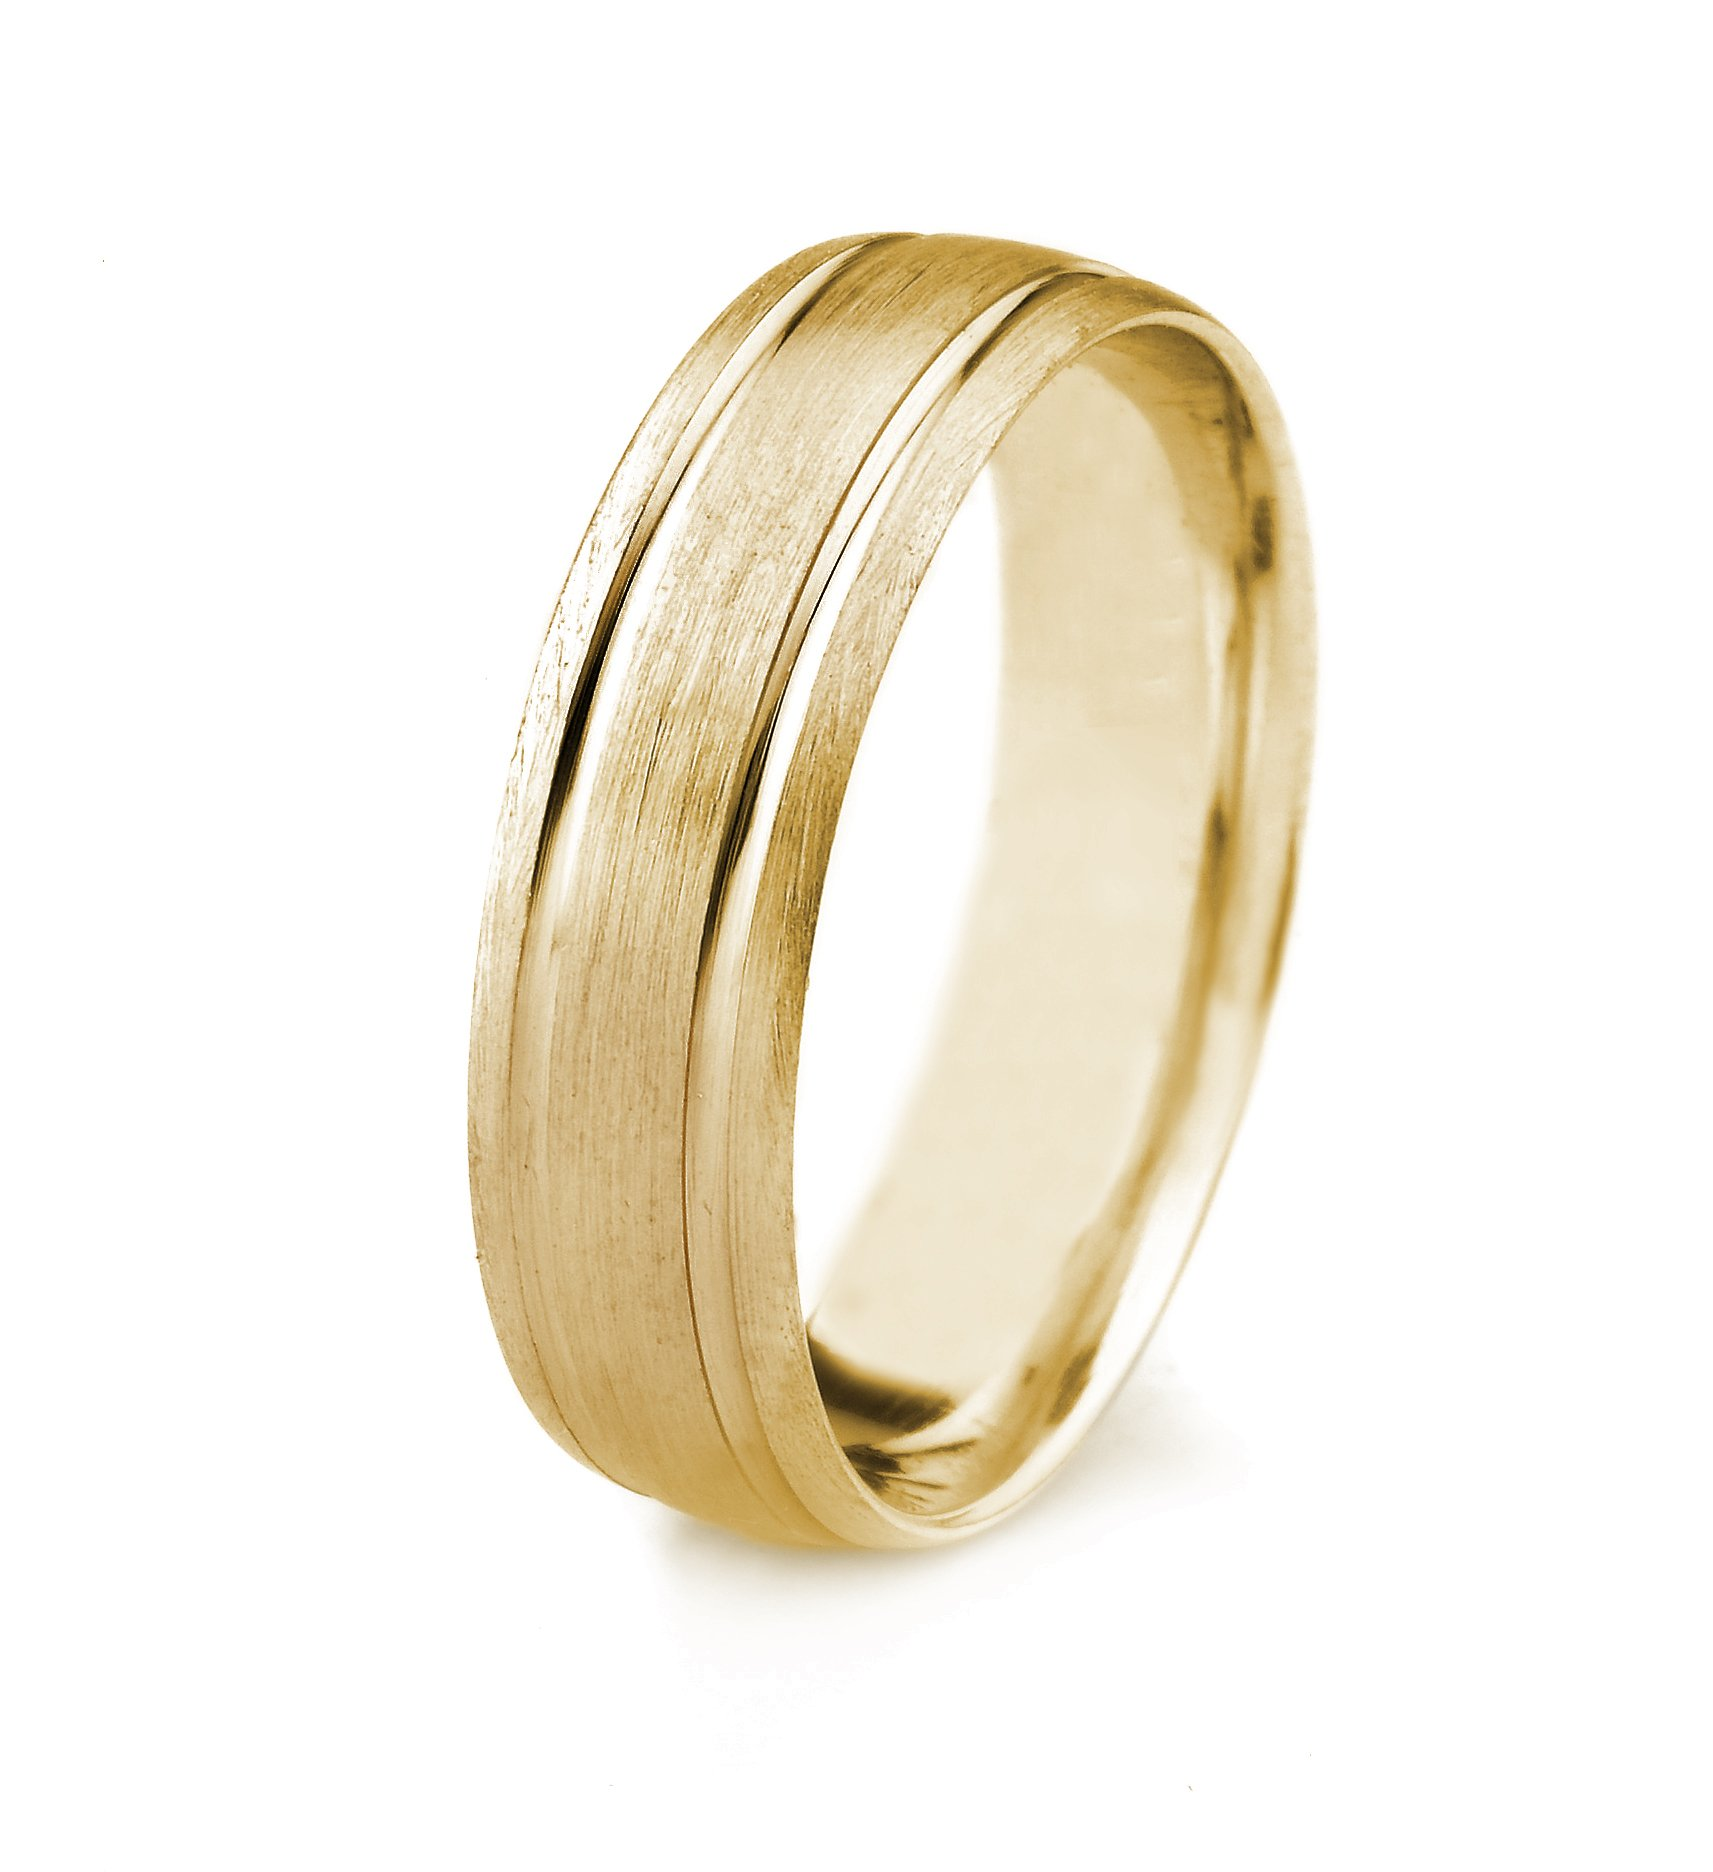 10k Gold Men's Wedding Band with Satin Finish and Parallel Grooves (6mm)